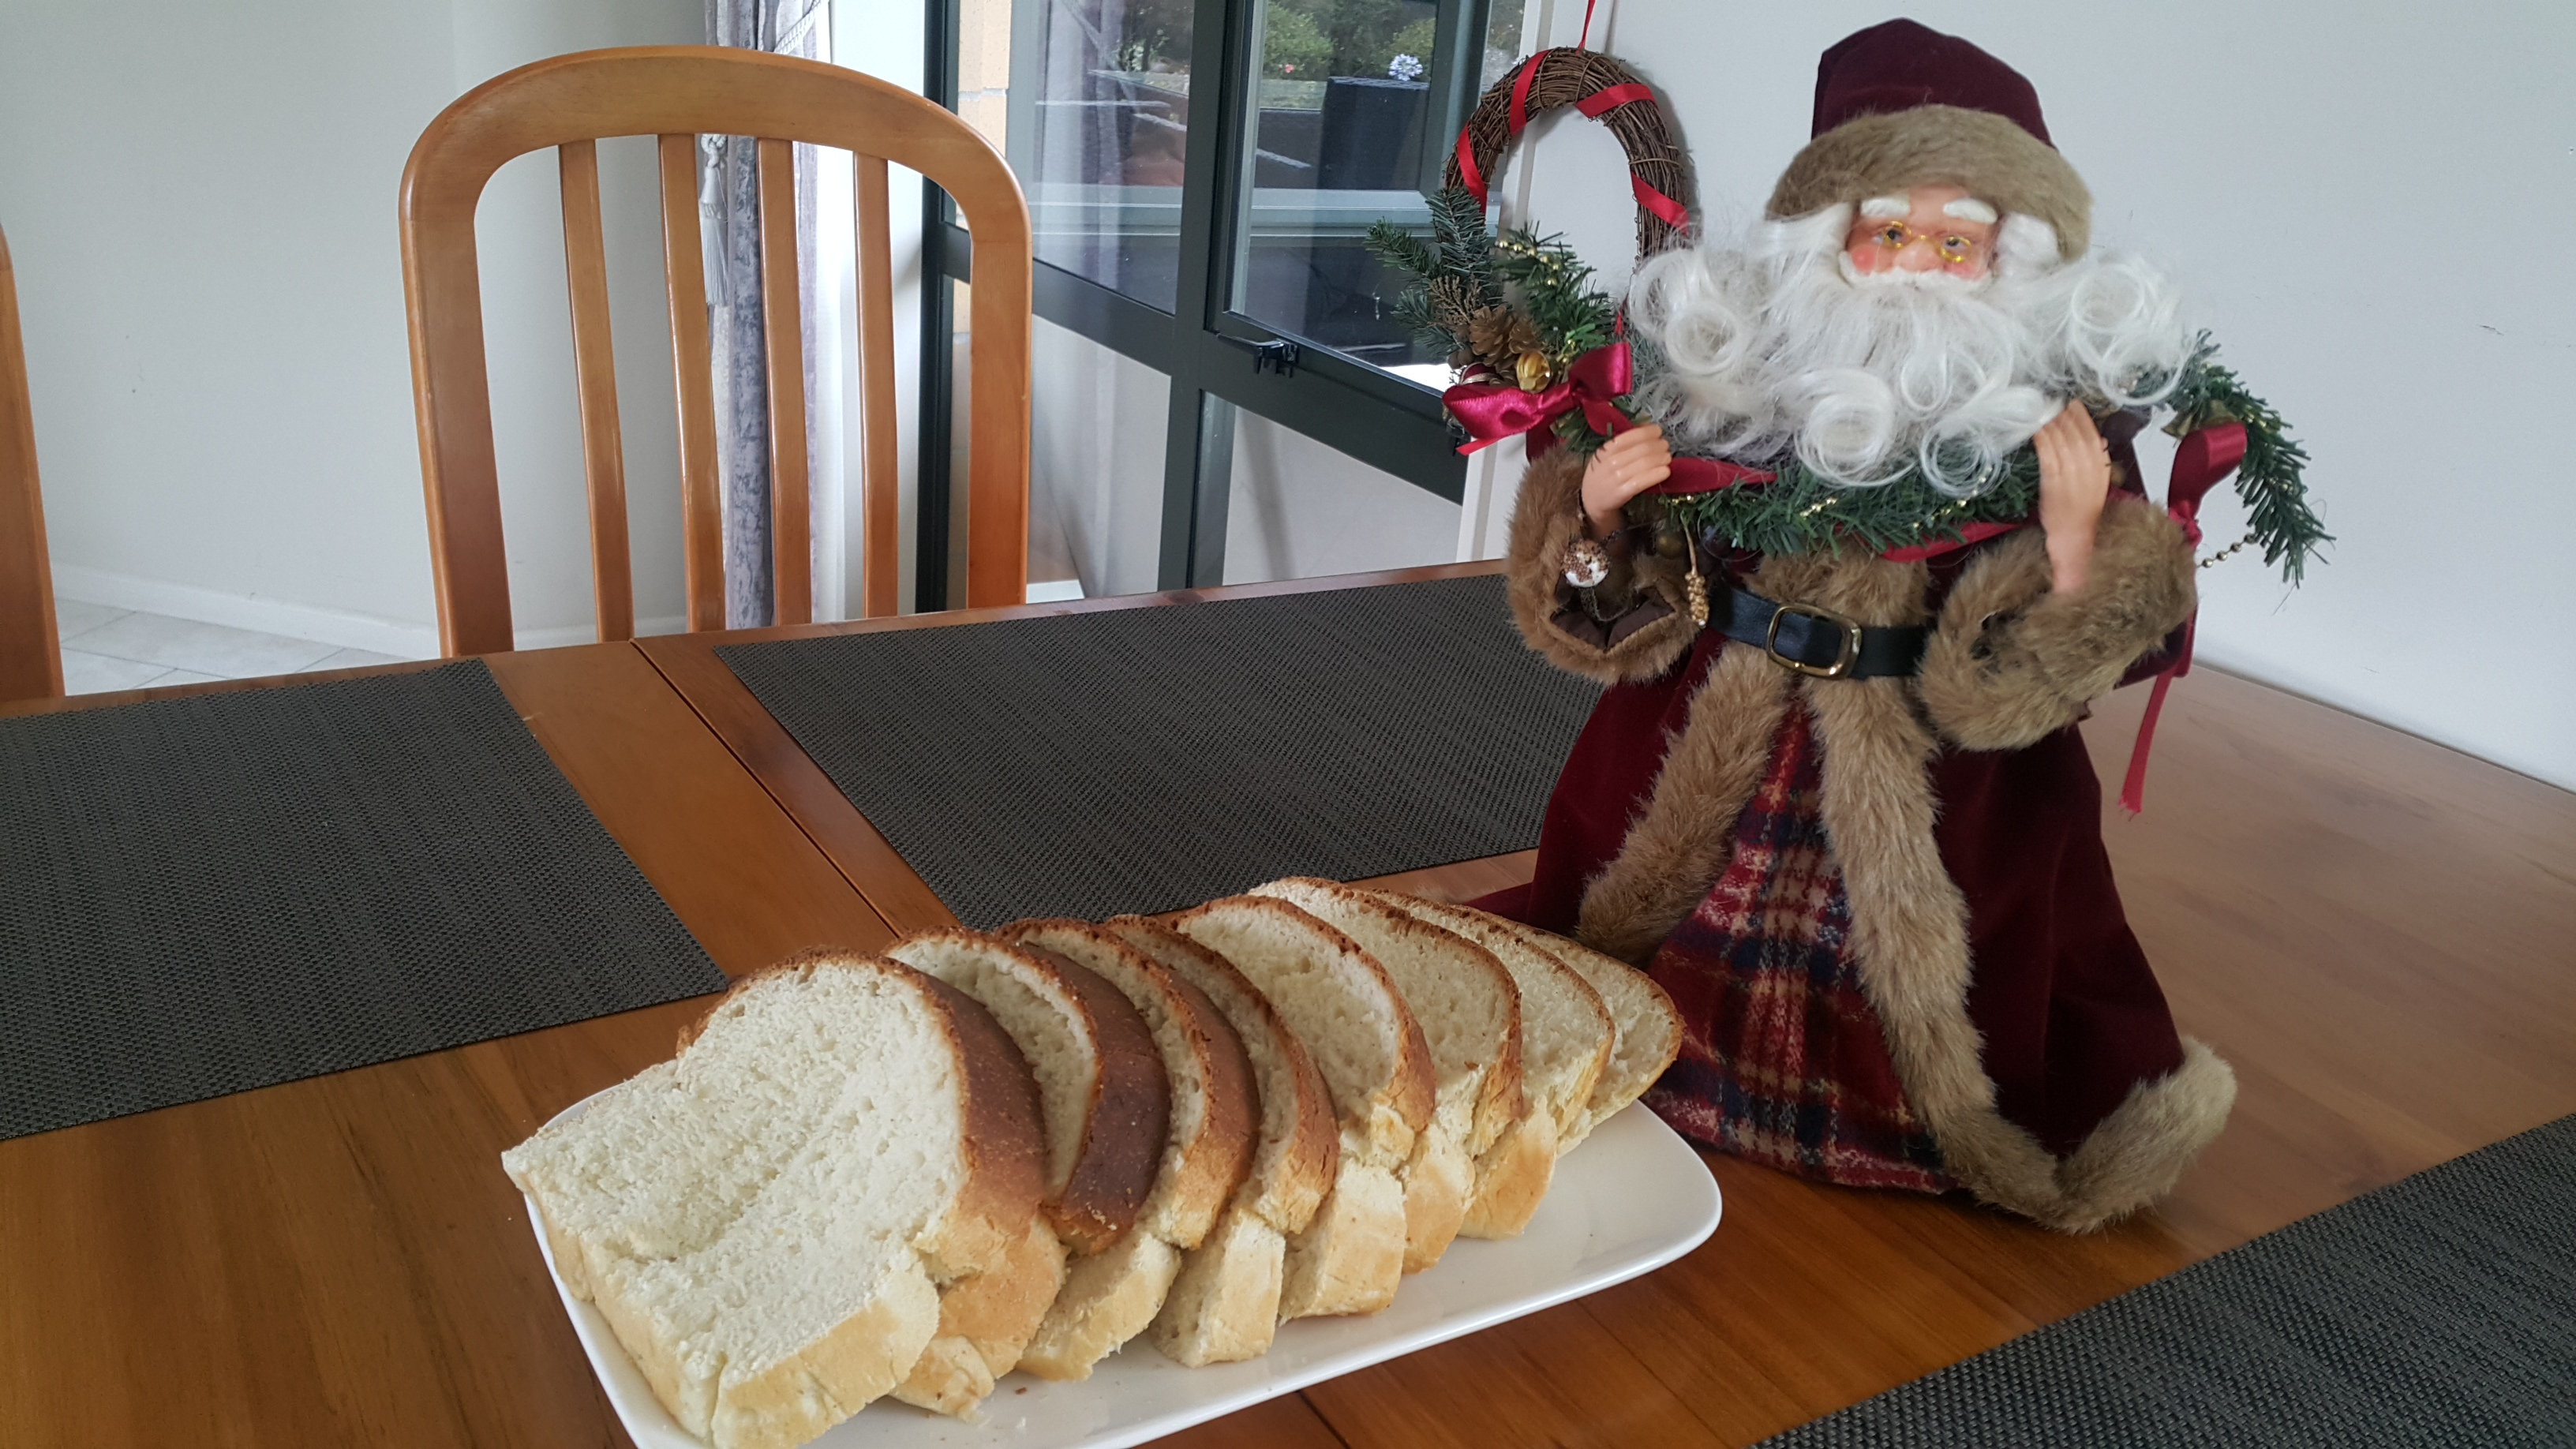 christmasbread.jpg